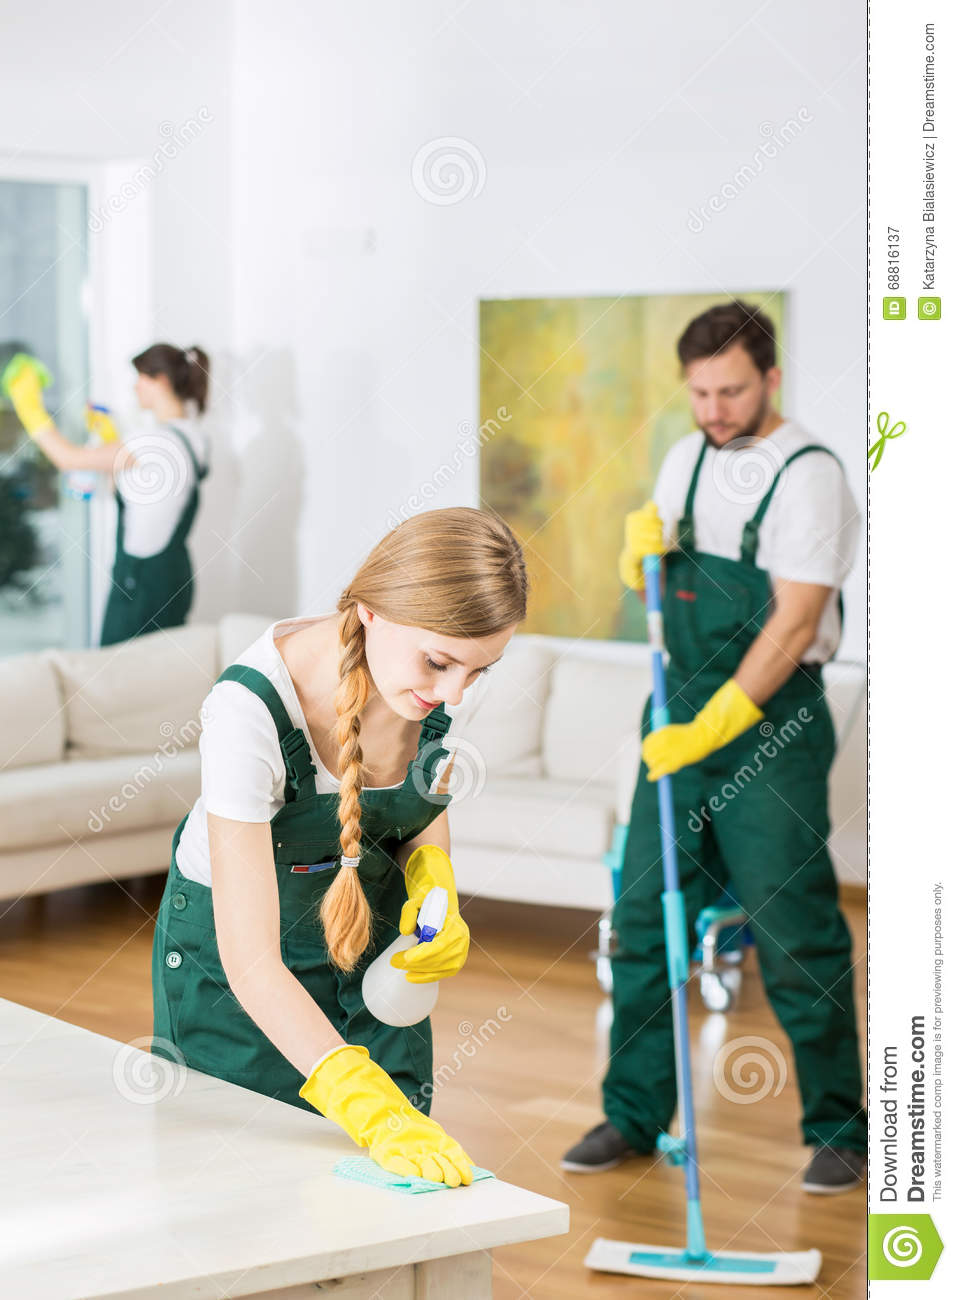 People Cleaning Services : Cleaning company and spacious living room stock image